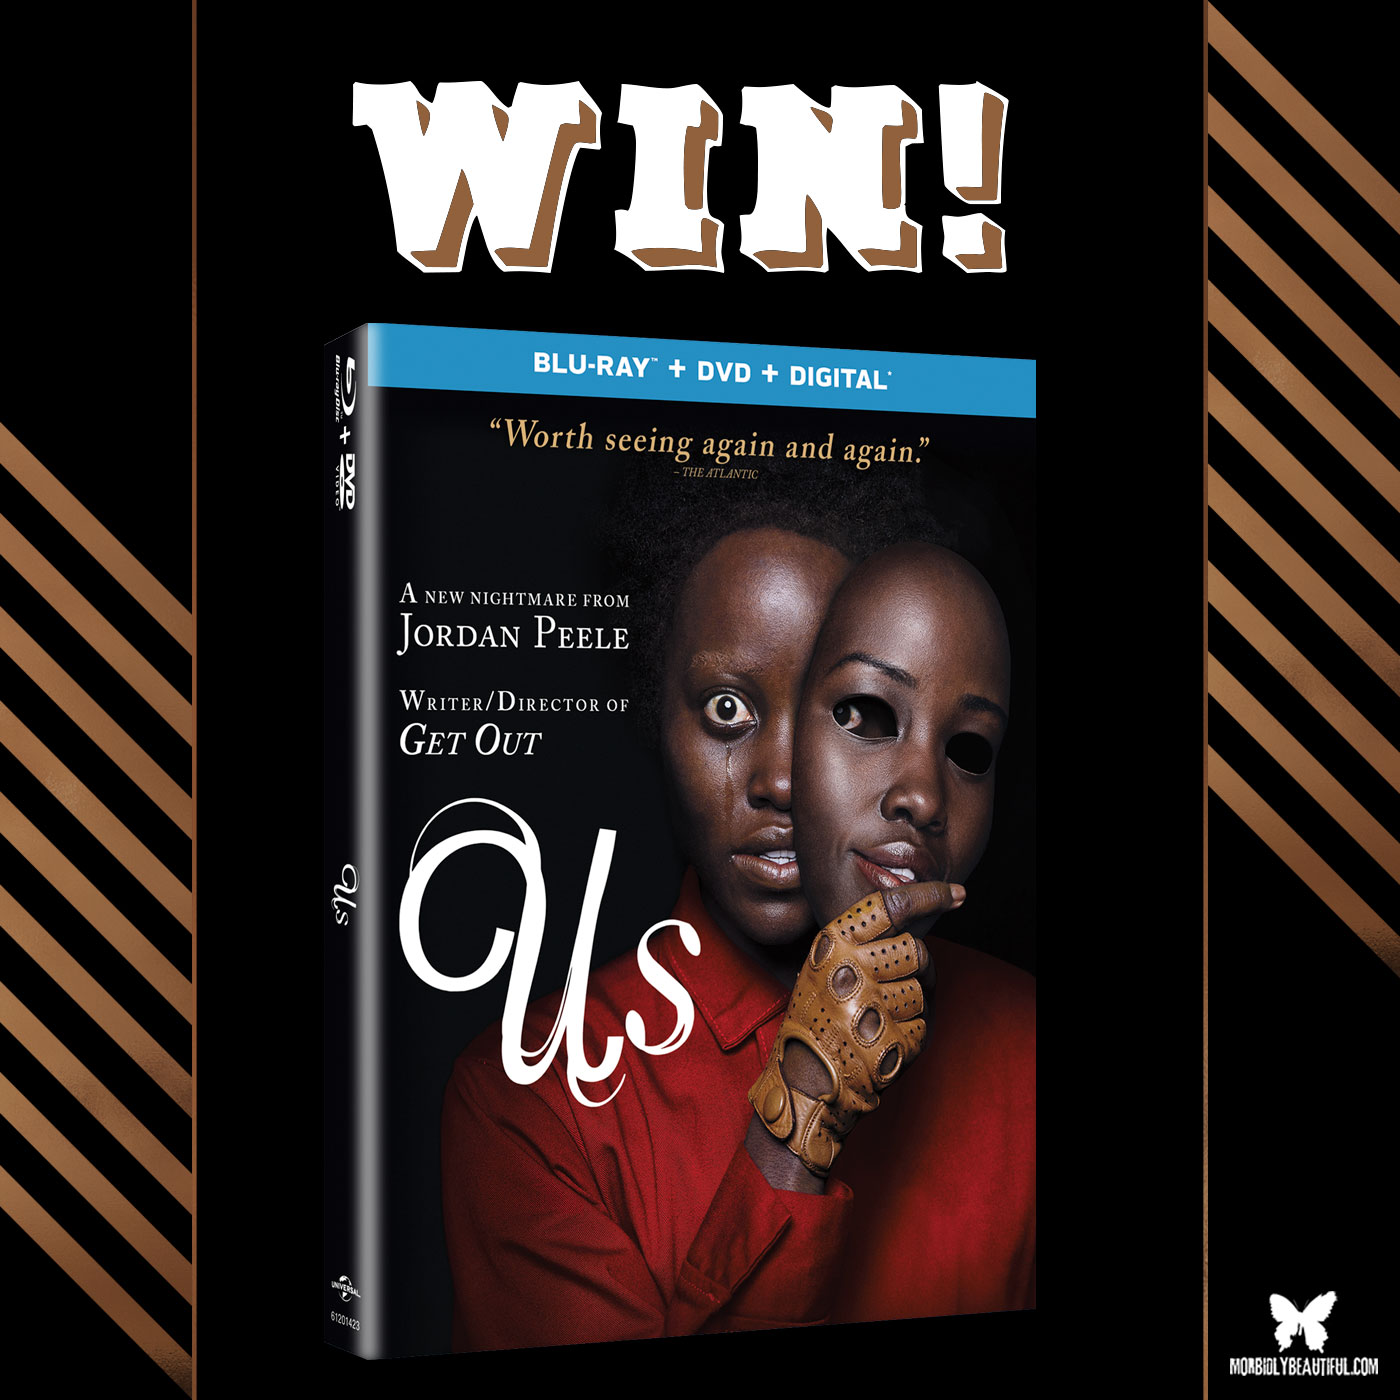 New On Blu: Win a Copy of